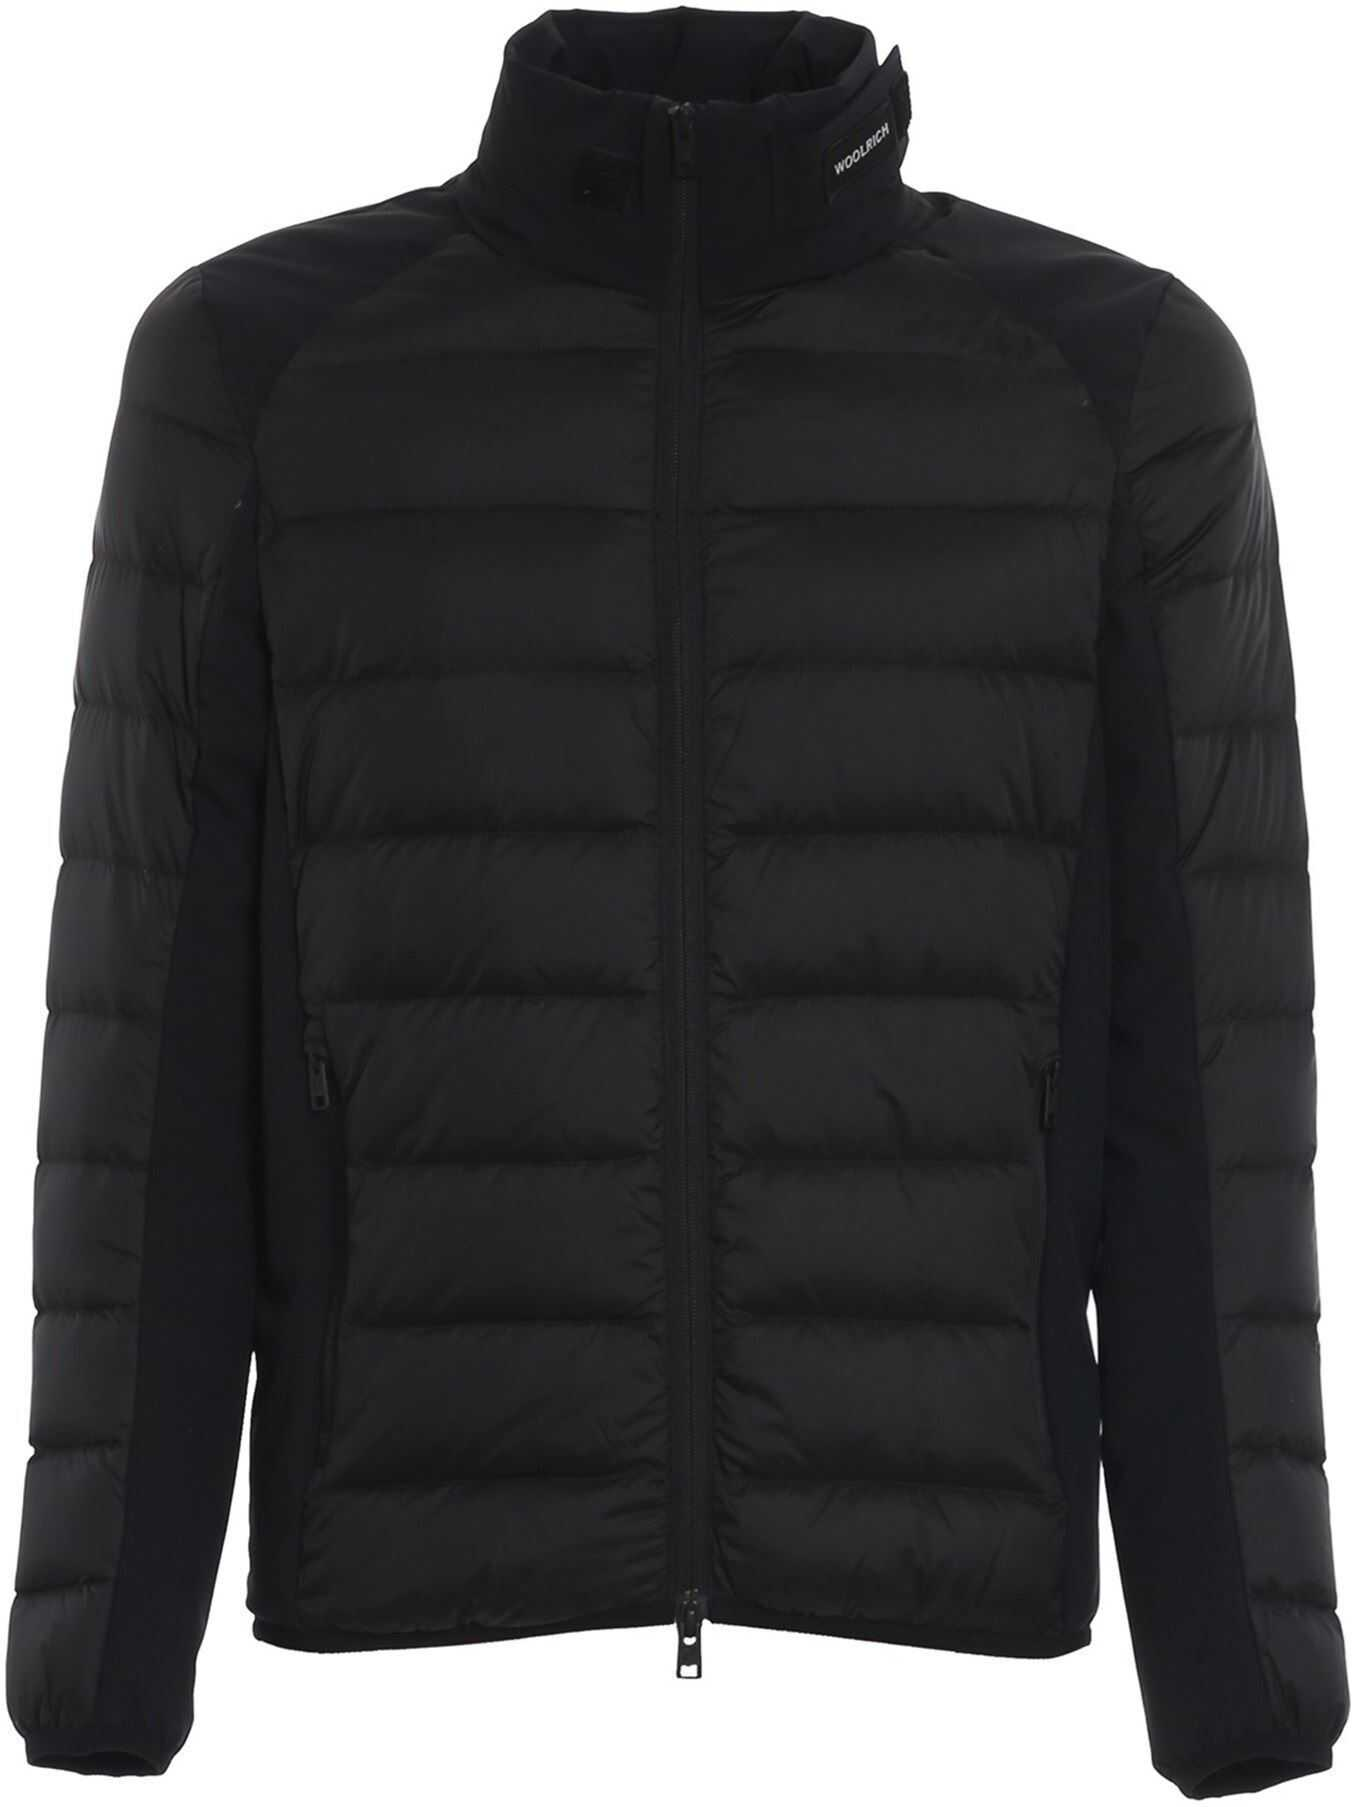 Woolrich Light Weight Padded Jacket In Black Black imagine